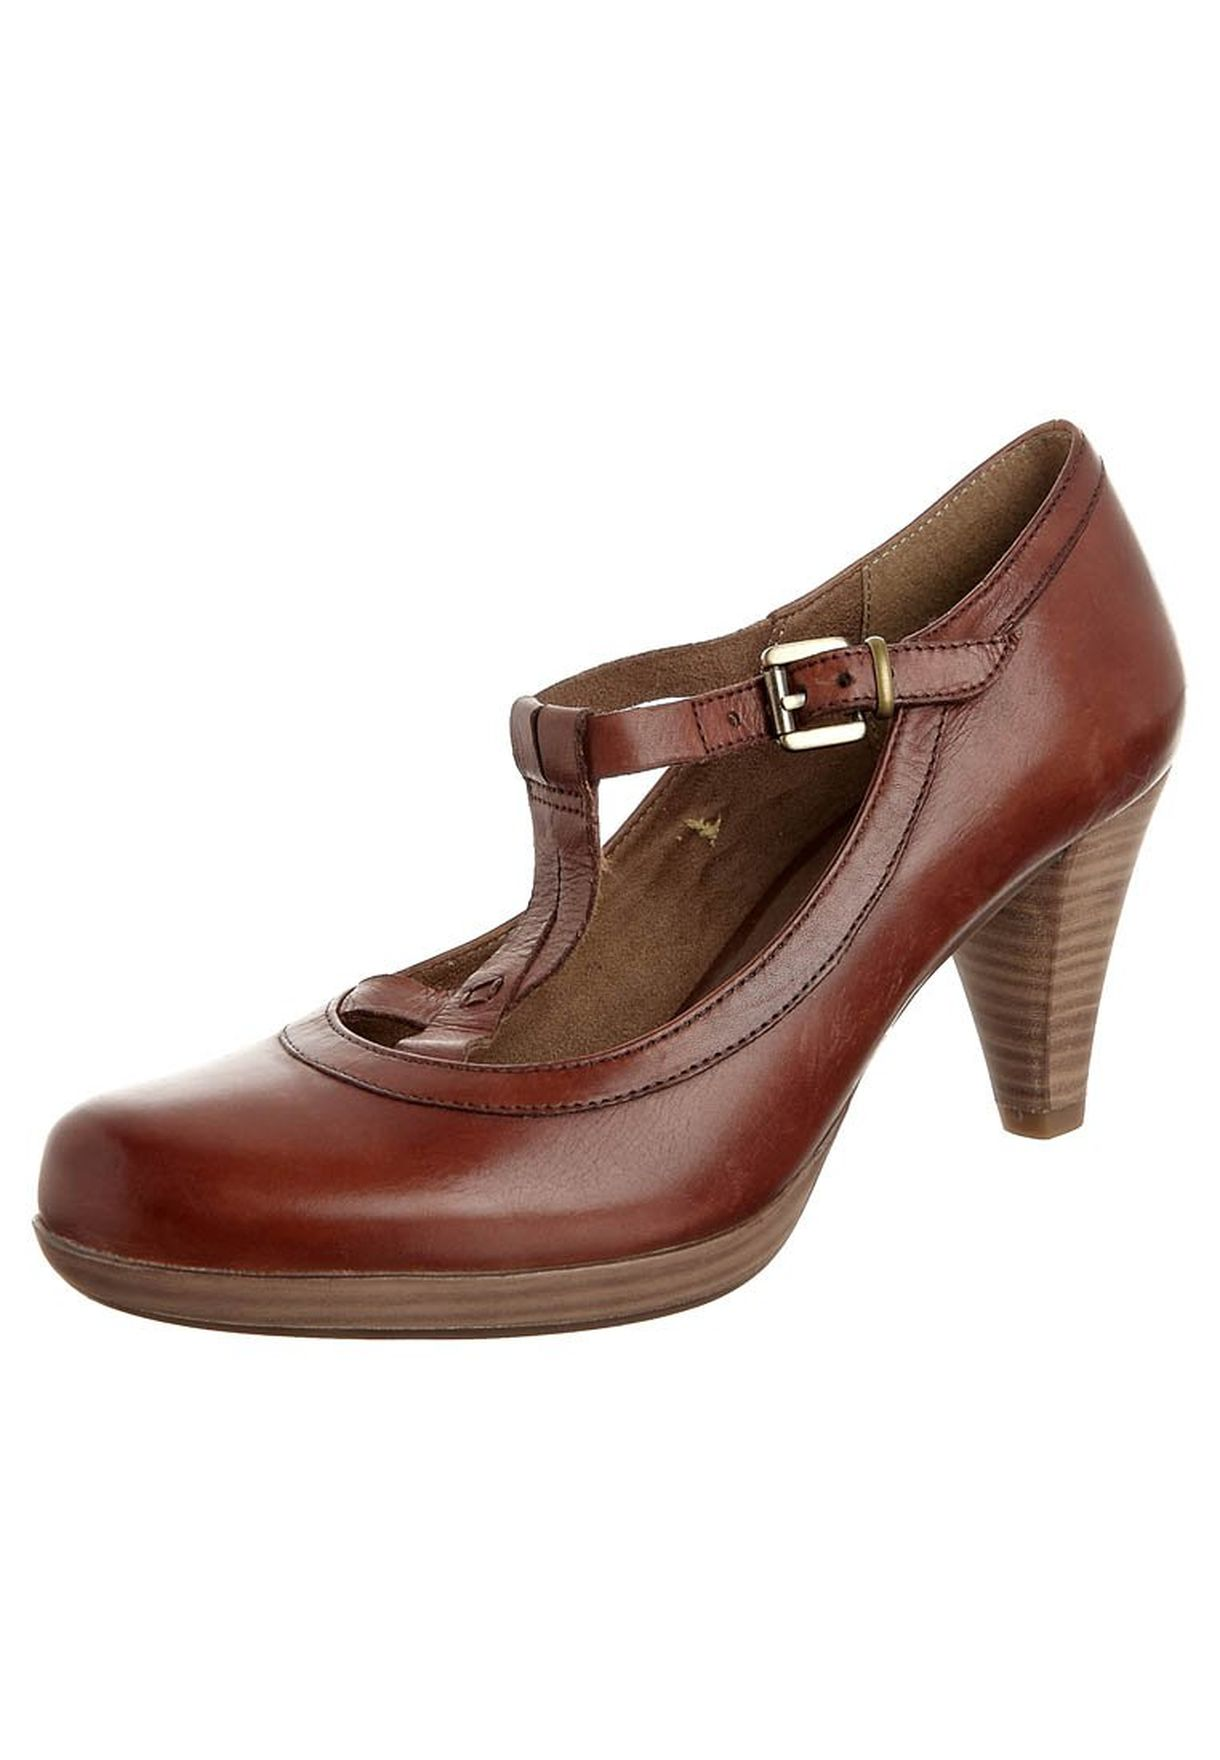 new arrival ca600 dfca8 Heels brown